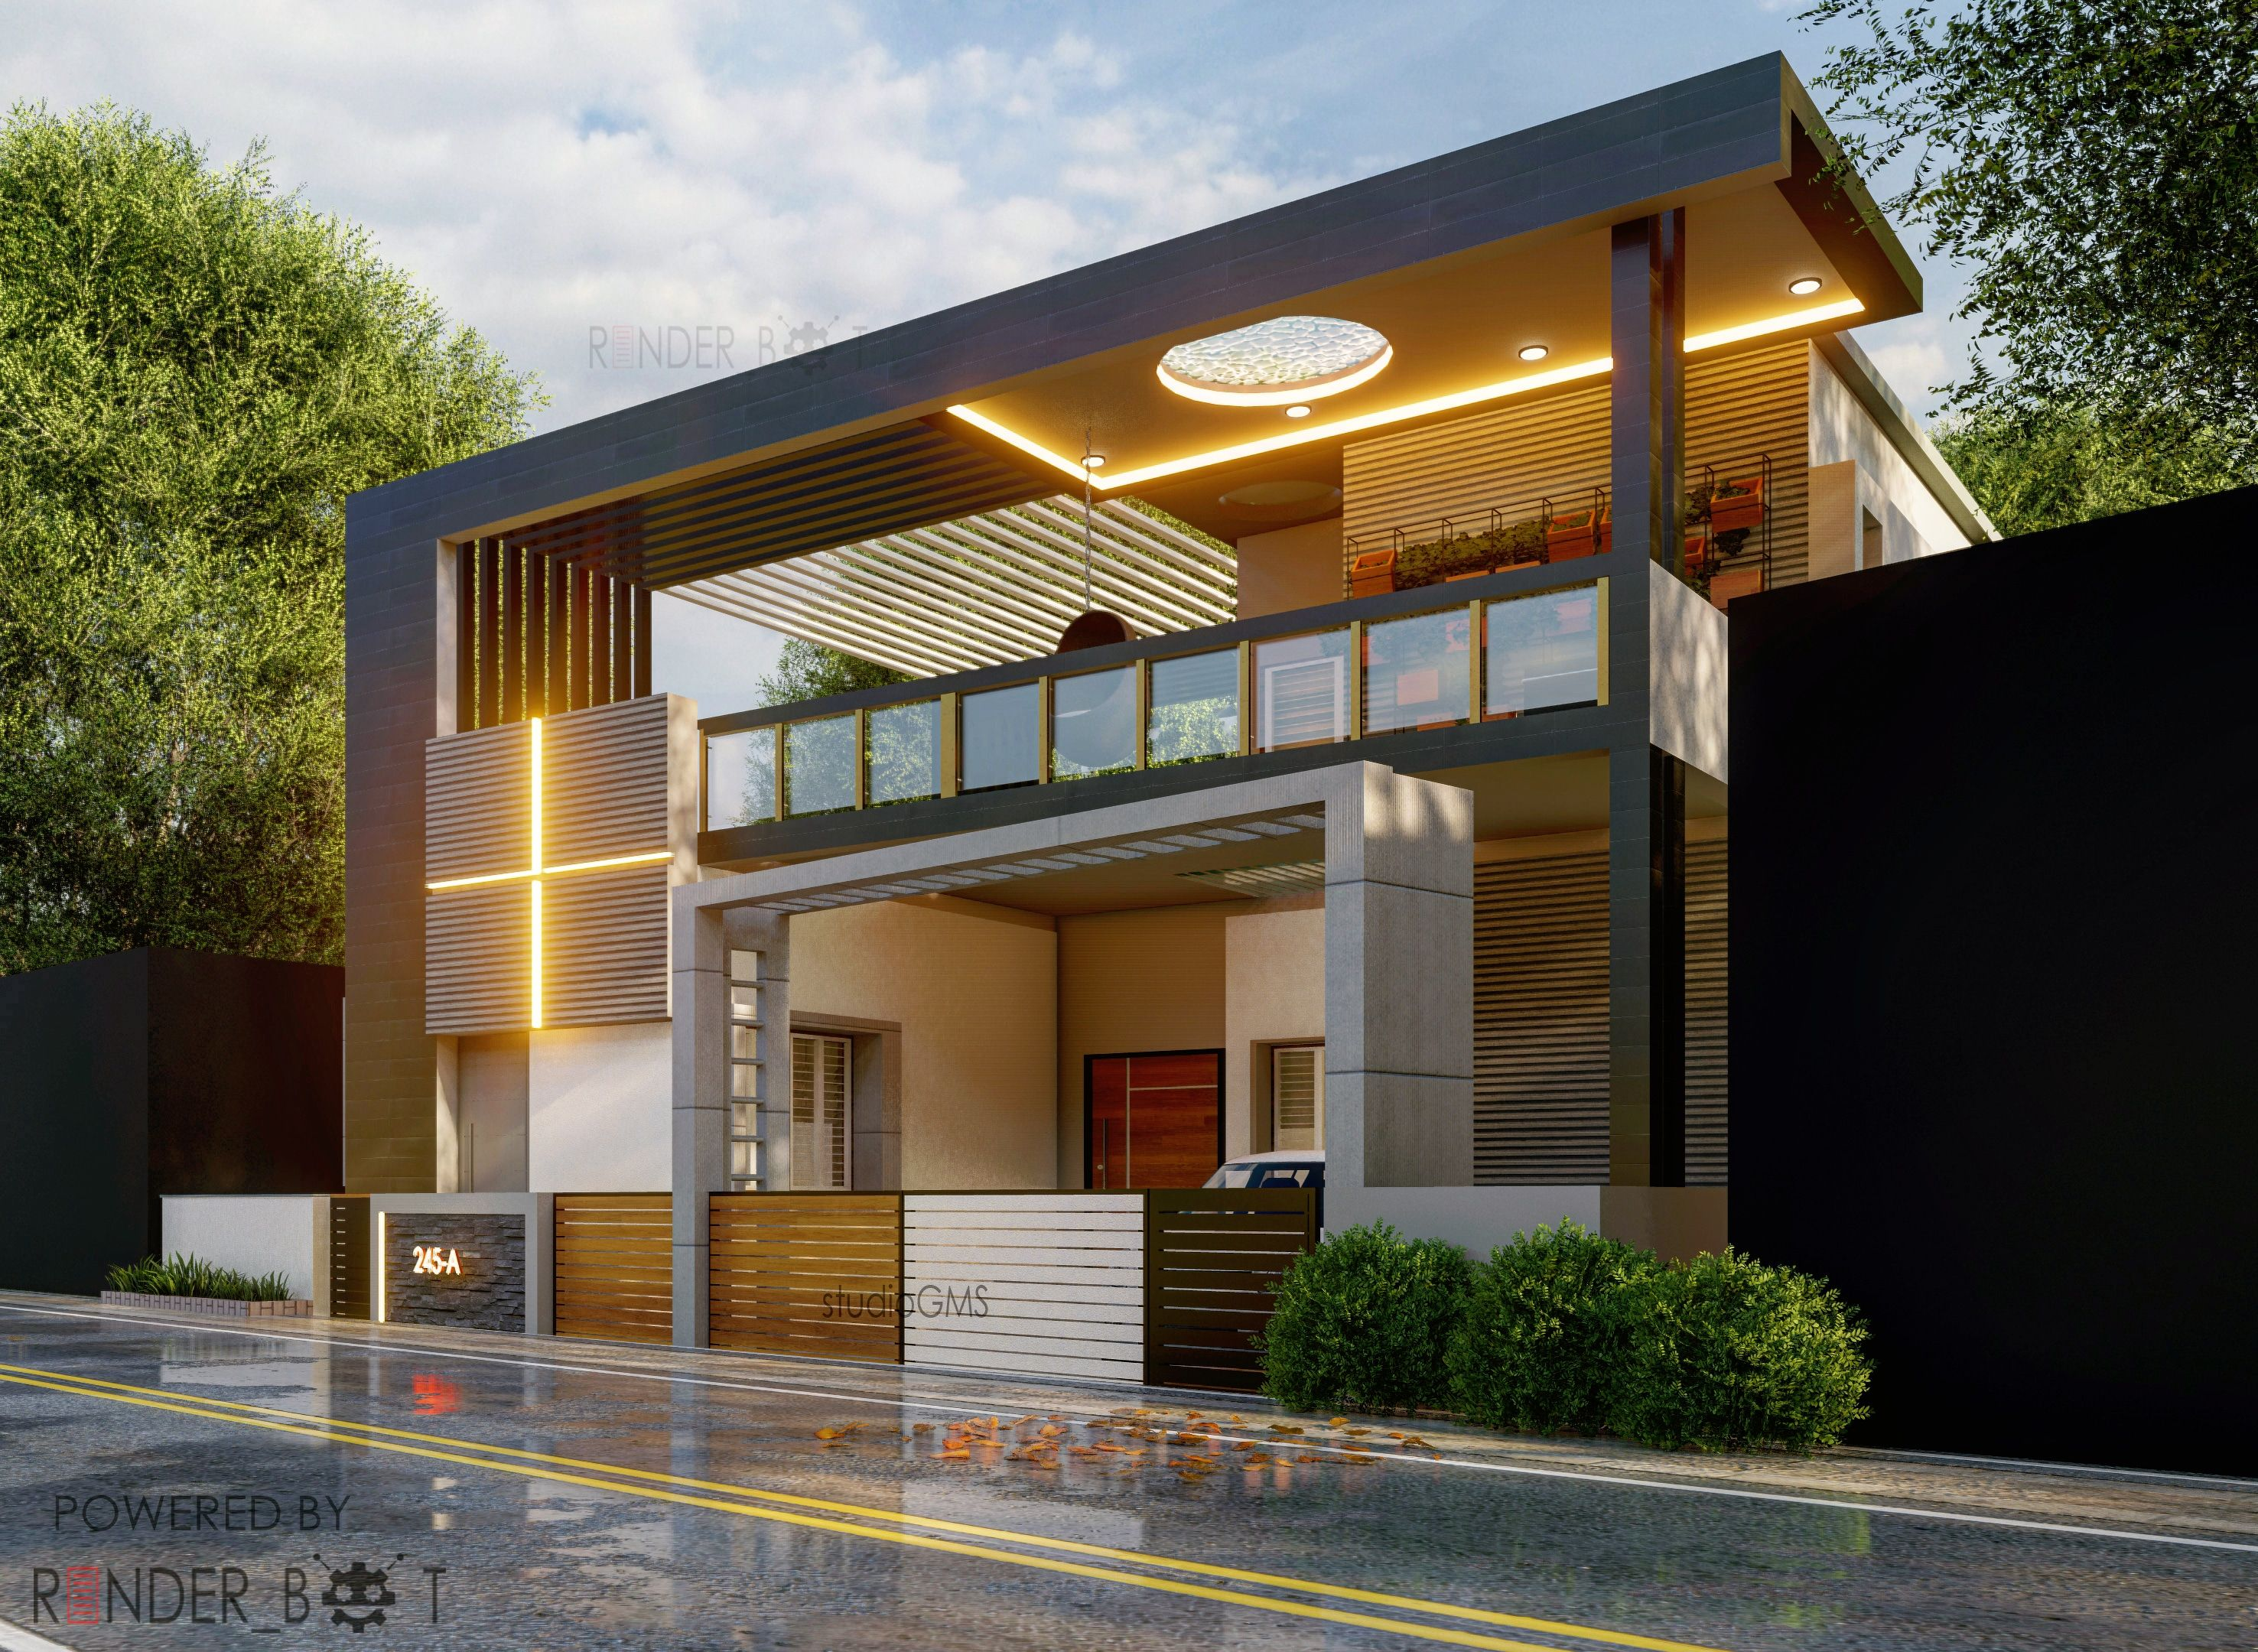 16 Awesome House Elevation Designs: Contemporary Elevation With Beautiful Cove Lighting Https